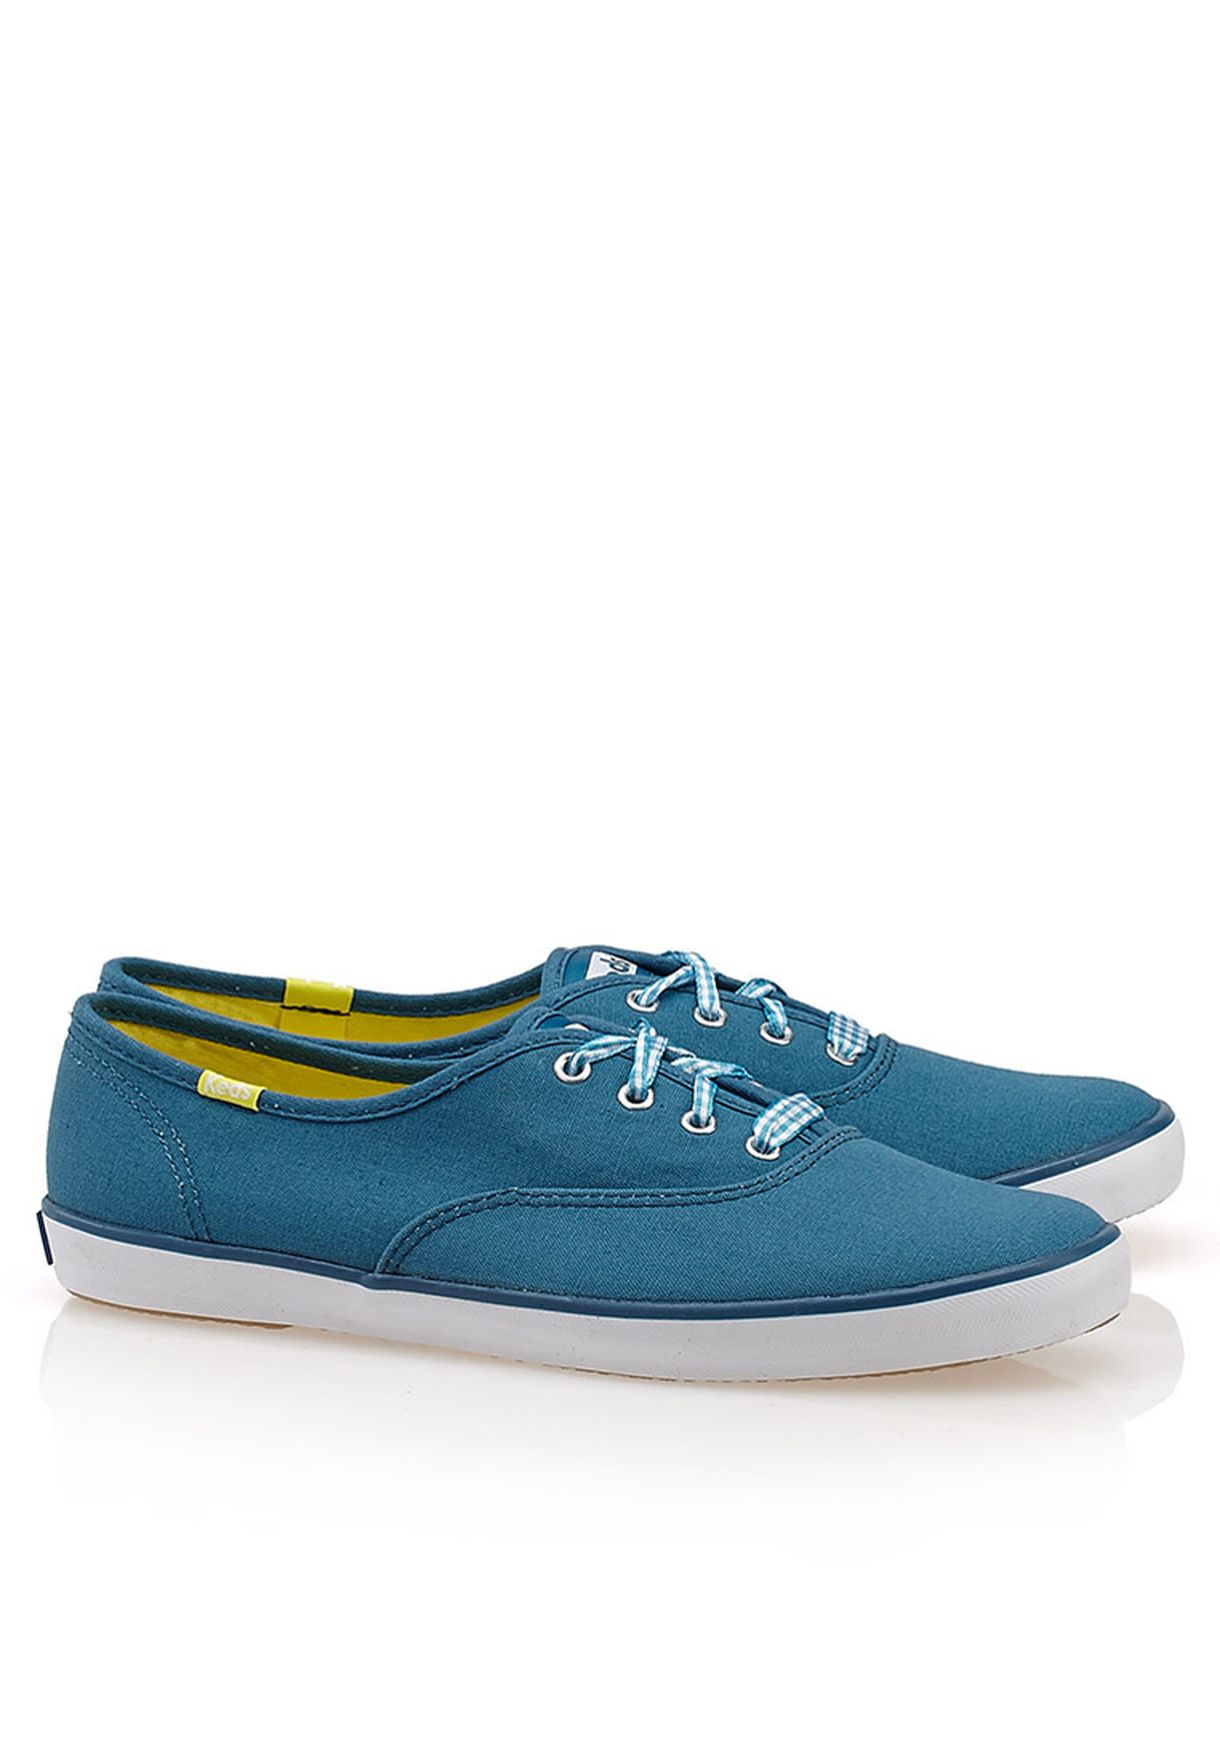 75d8d28ab1 Shop Keds blue Champion Seasonal Solid Ox Sneakers for Women in ...